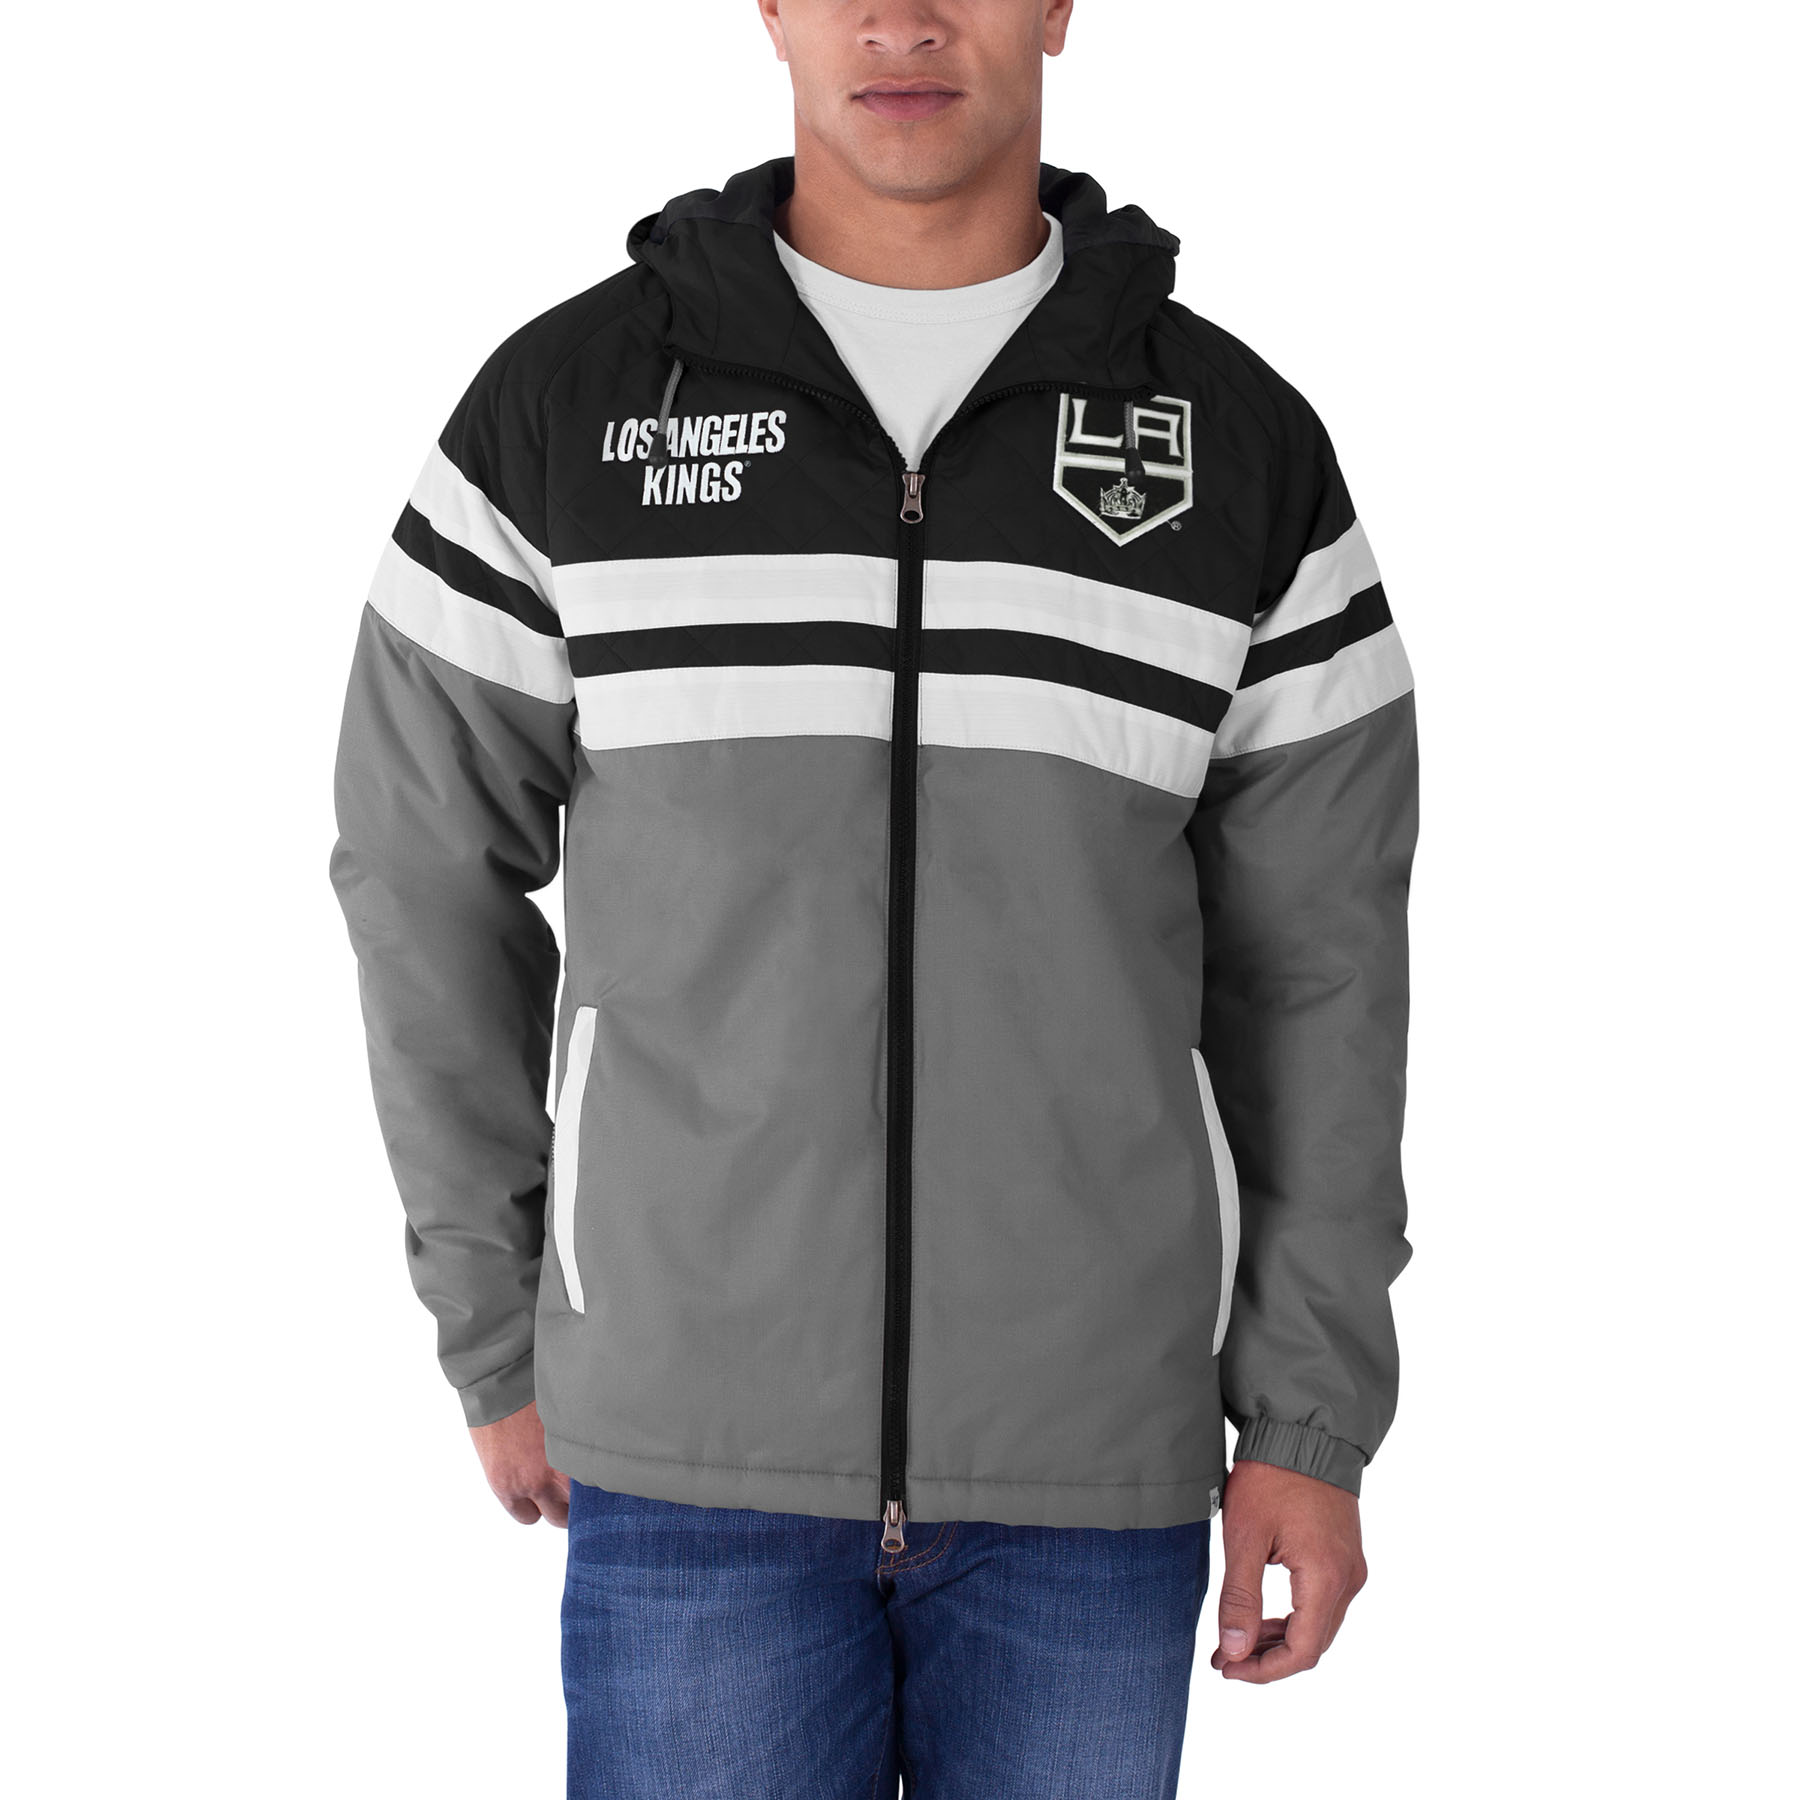 Los Angeles Kings Halfback Jacket